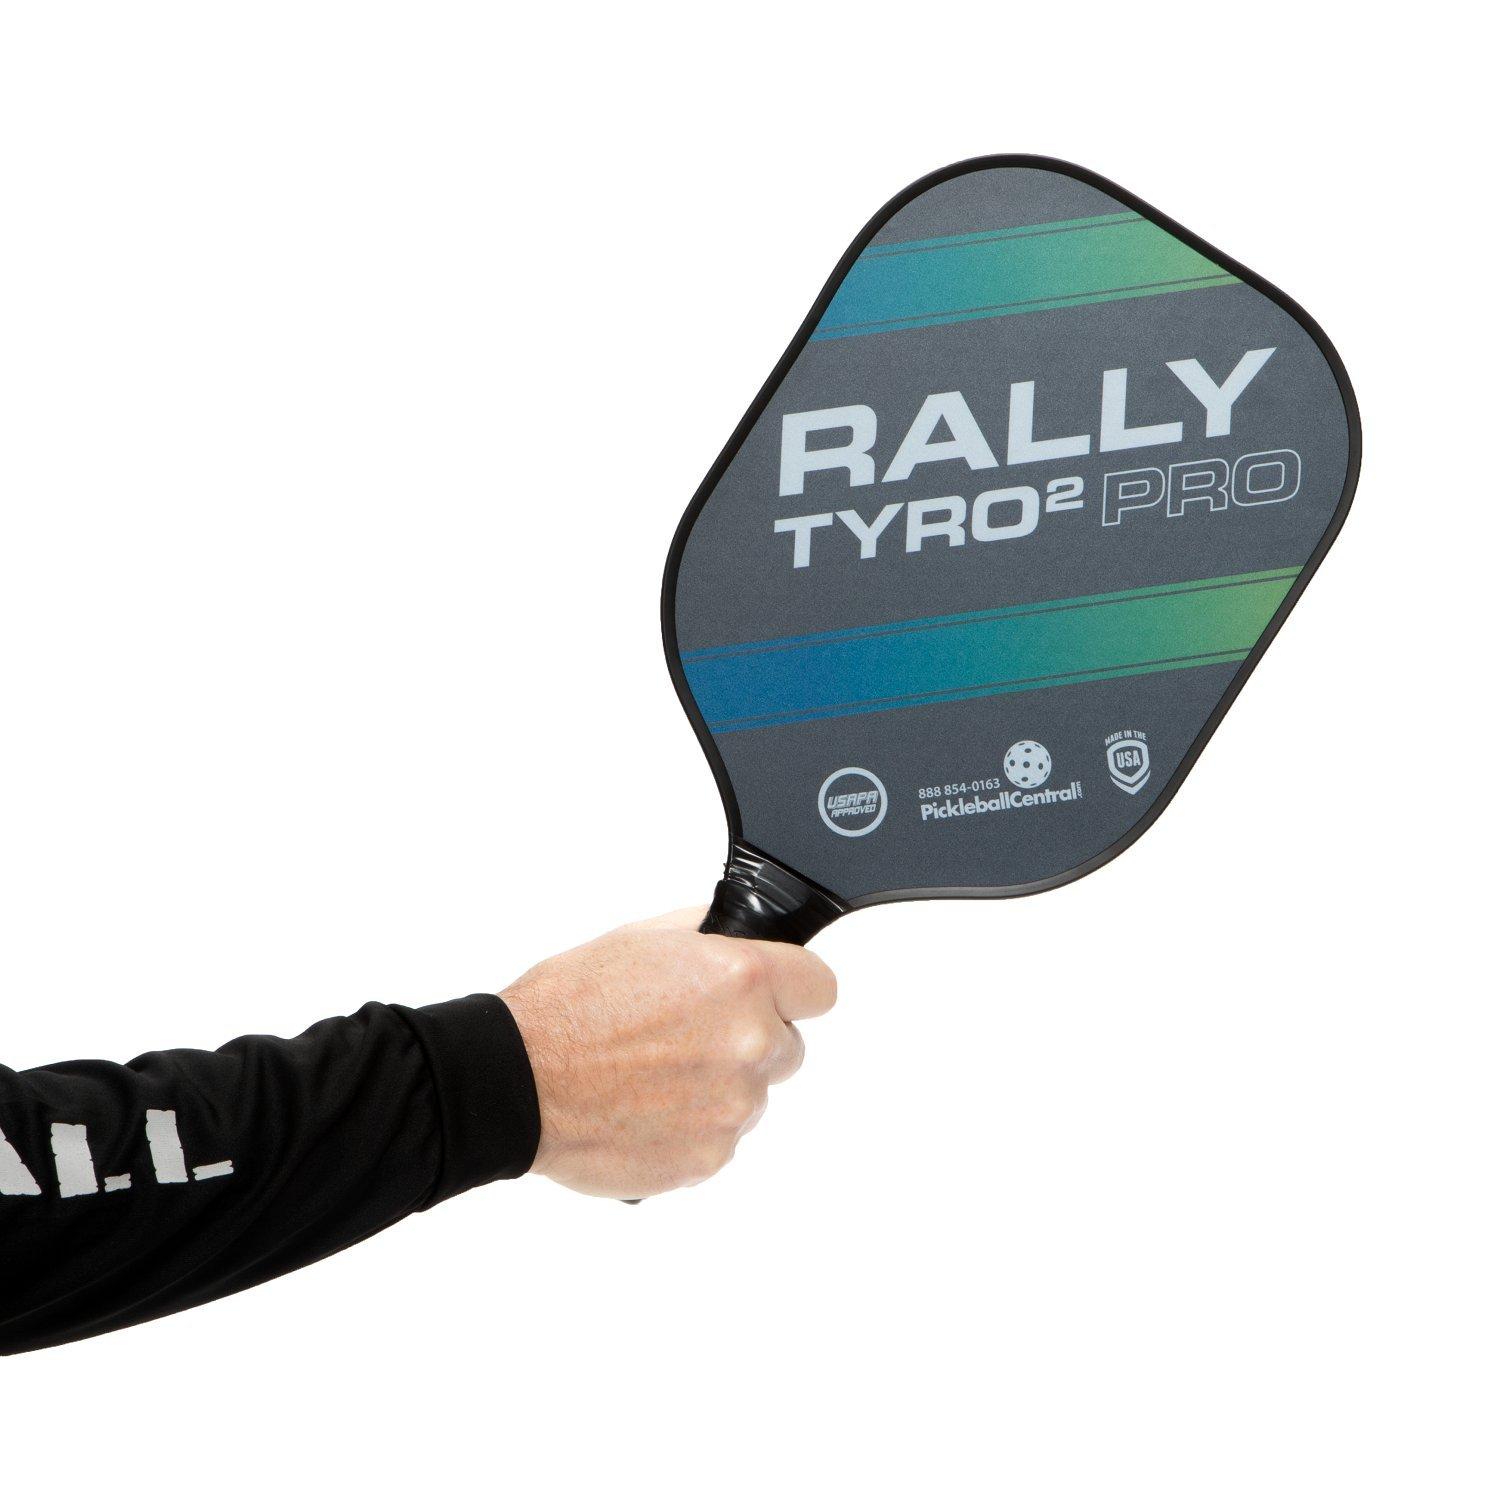 Rally Tyro 2 Pro Pickleball Paddle (Single Paddle - Ocean Blue) by PickleballCentral (Image #8)